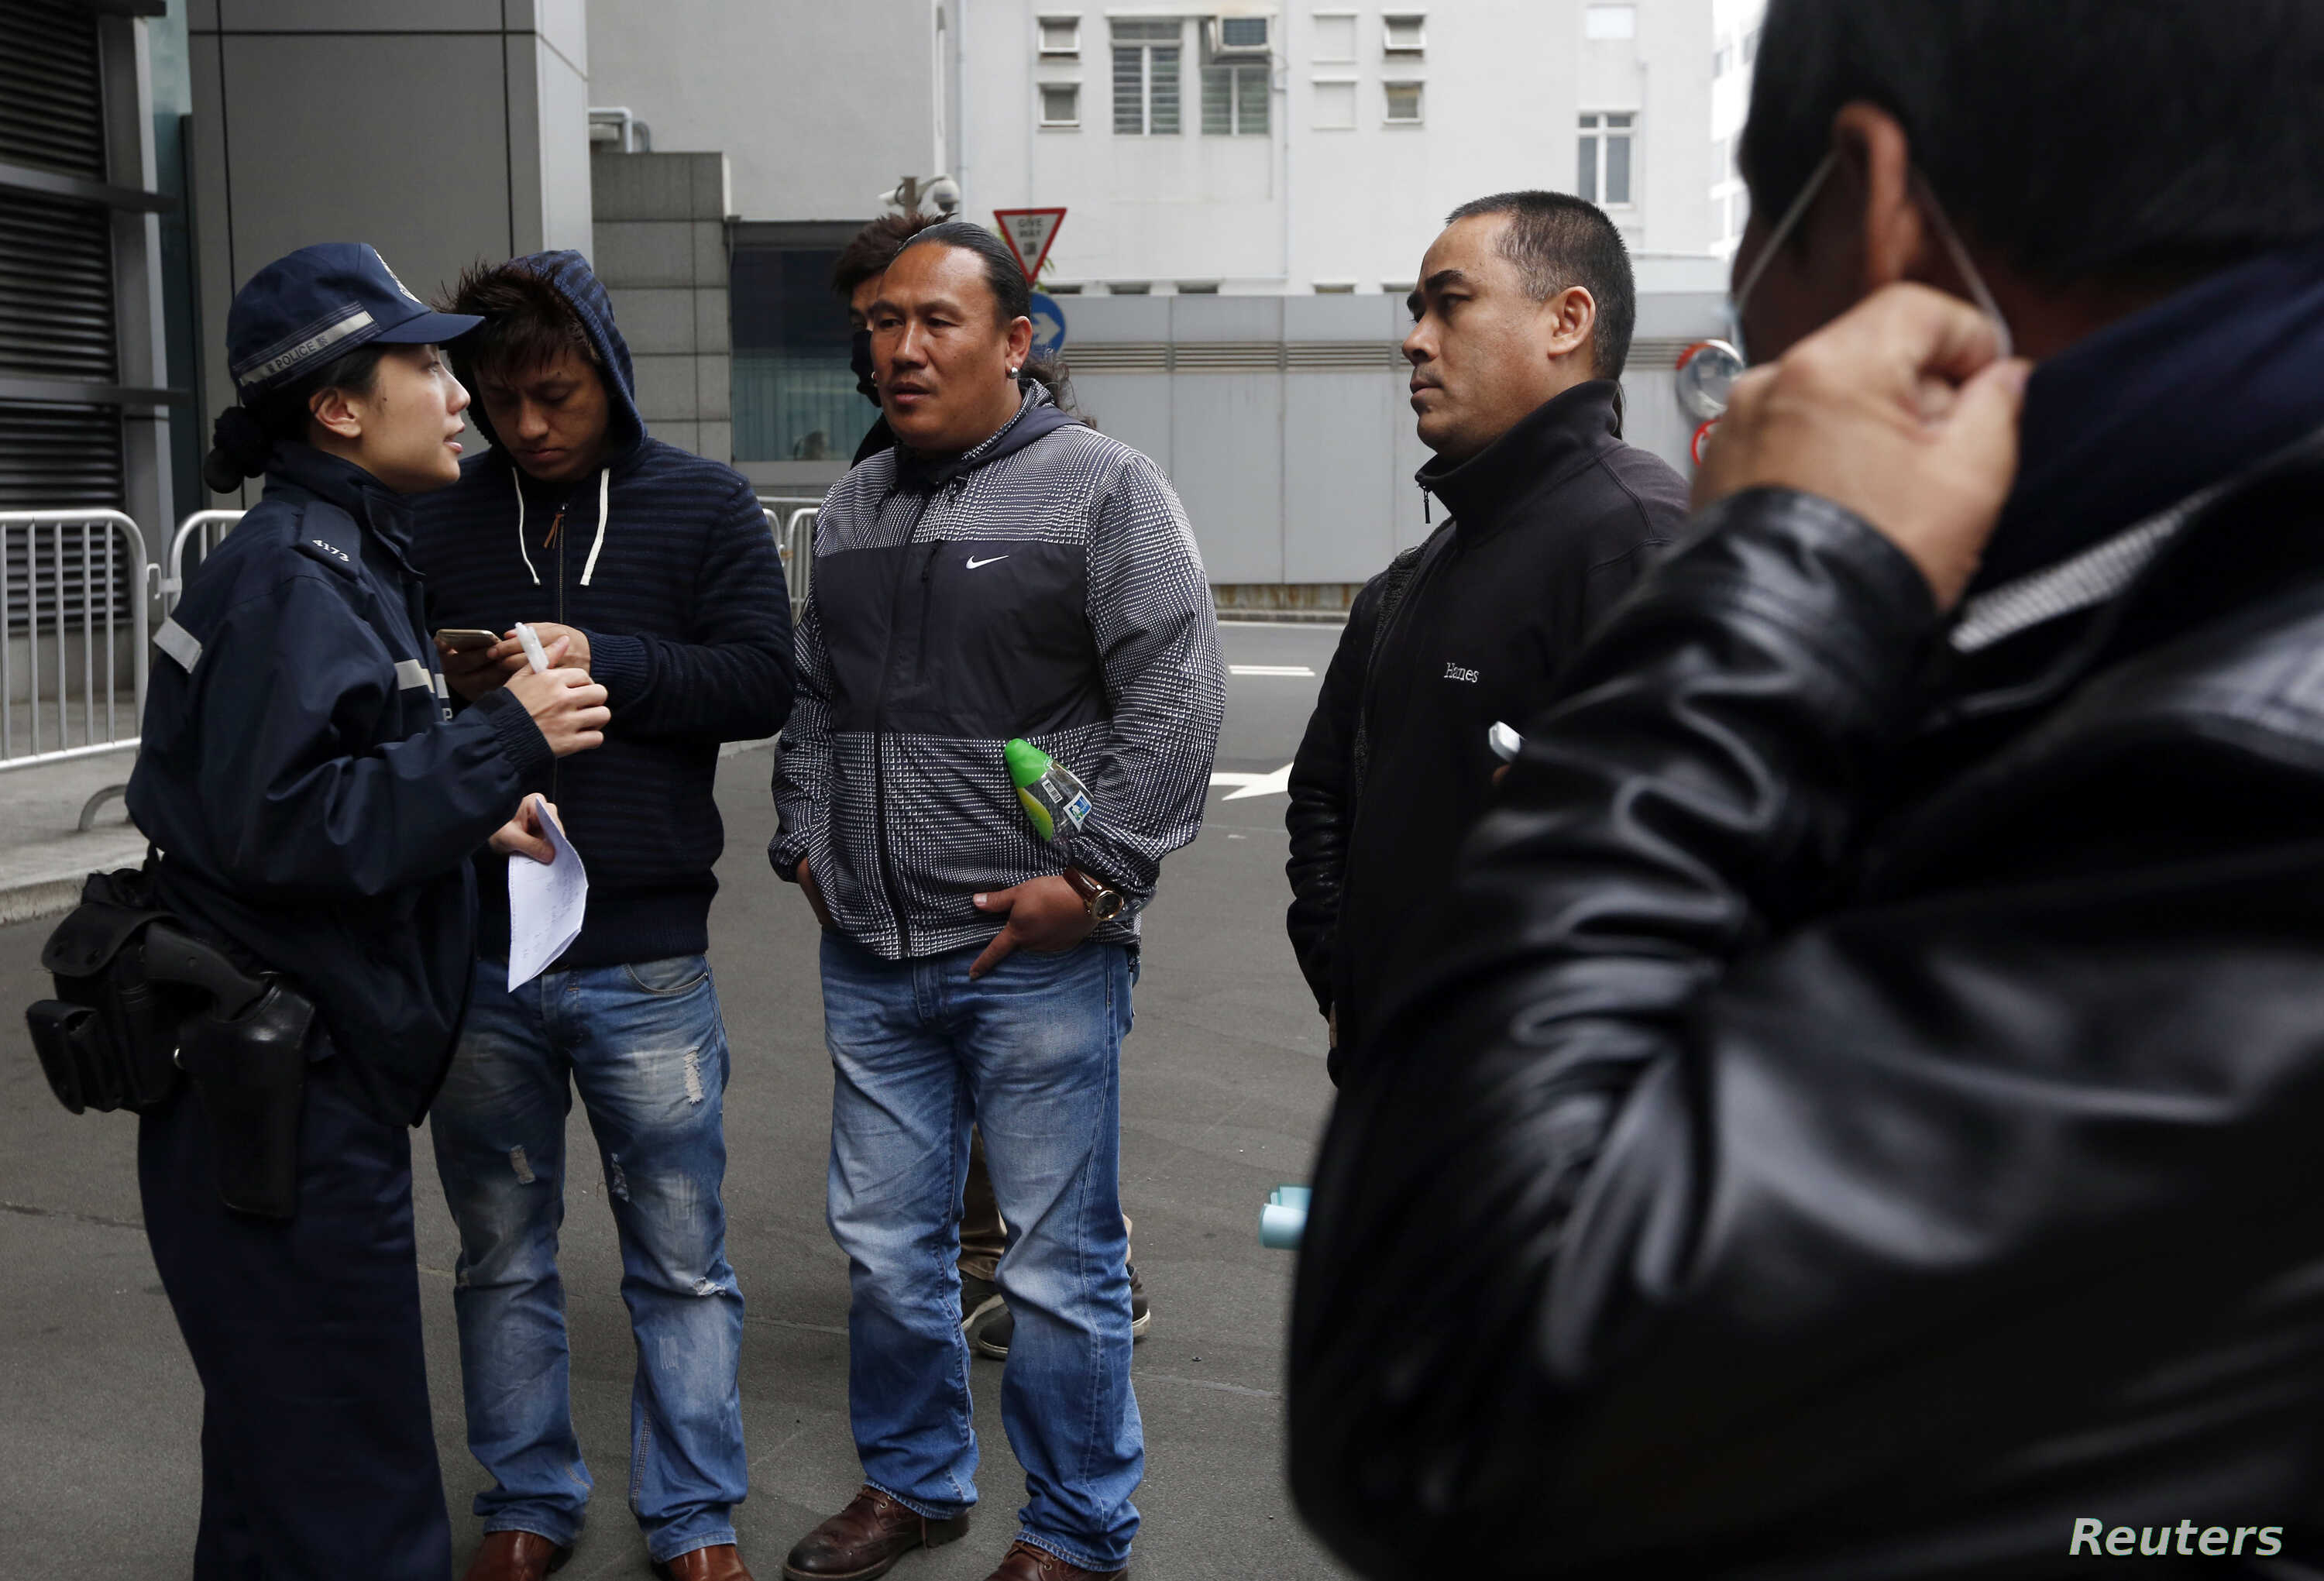 FILE - A policewoman talks to a group of Nepalese men, who have invested in bitcoin, outside the police headquarters in Hong Kong Feb. 11, 2015. Hong Kong lawmakers at that time urged authorities to ban bitcoin as more than 25 people flocked to polic...